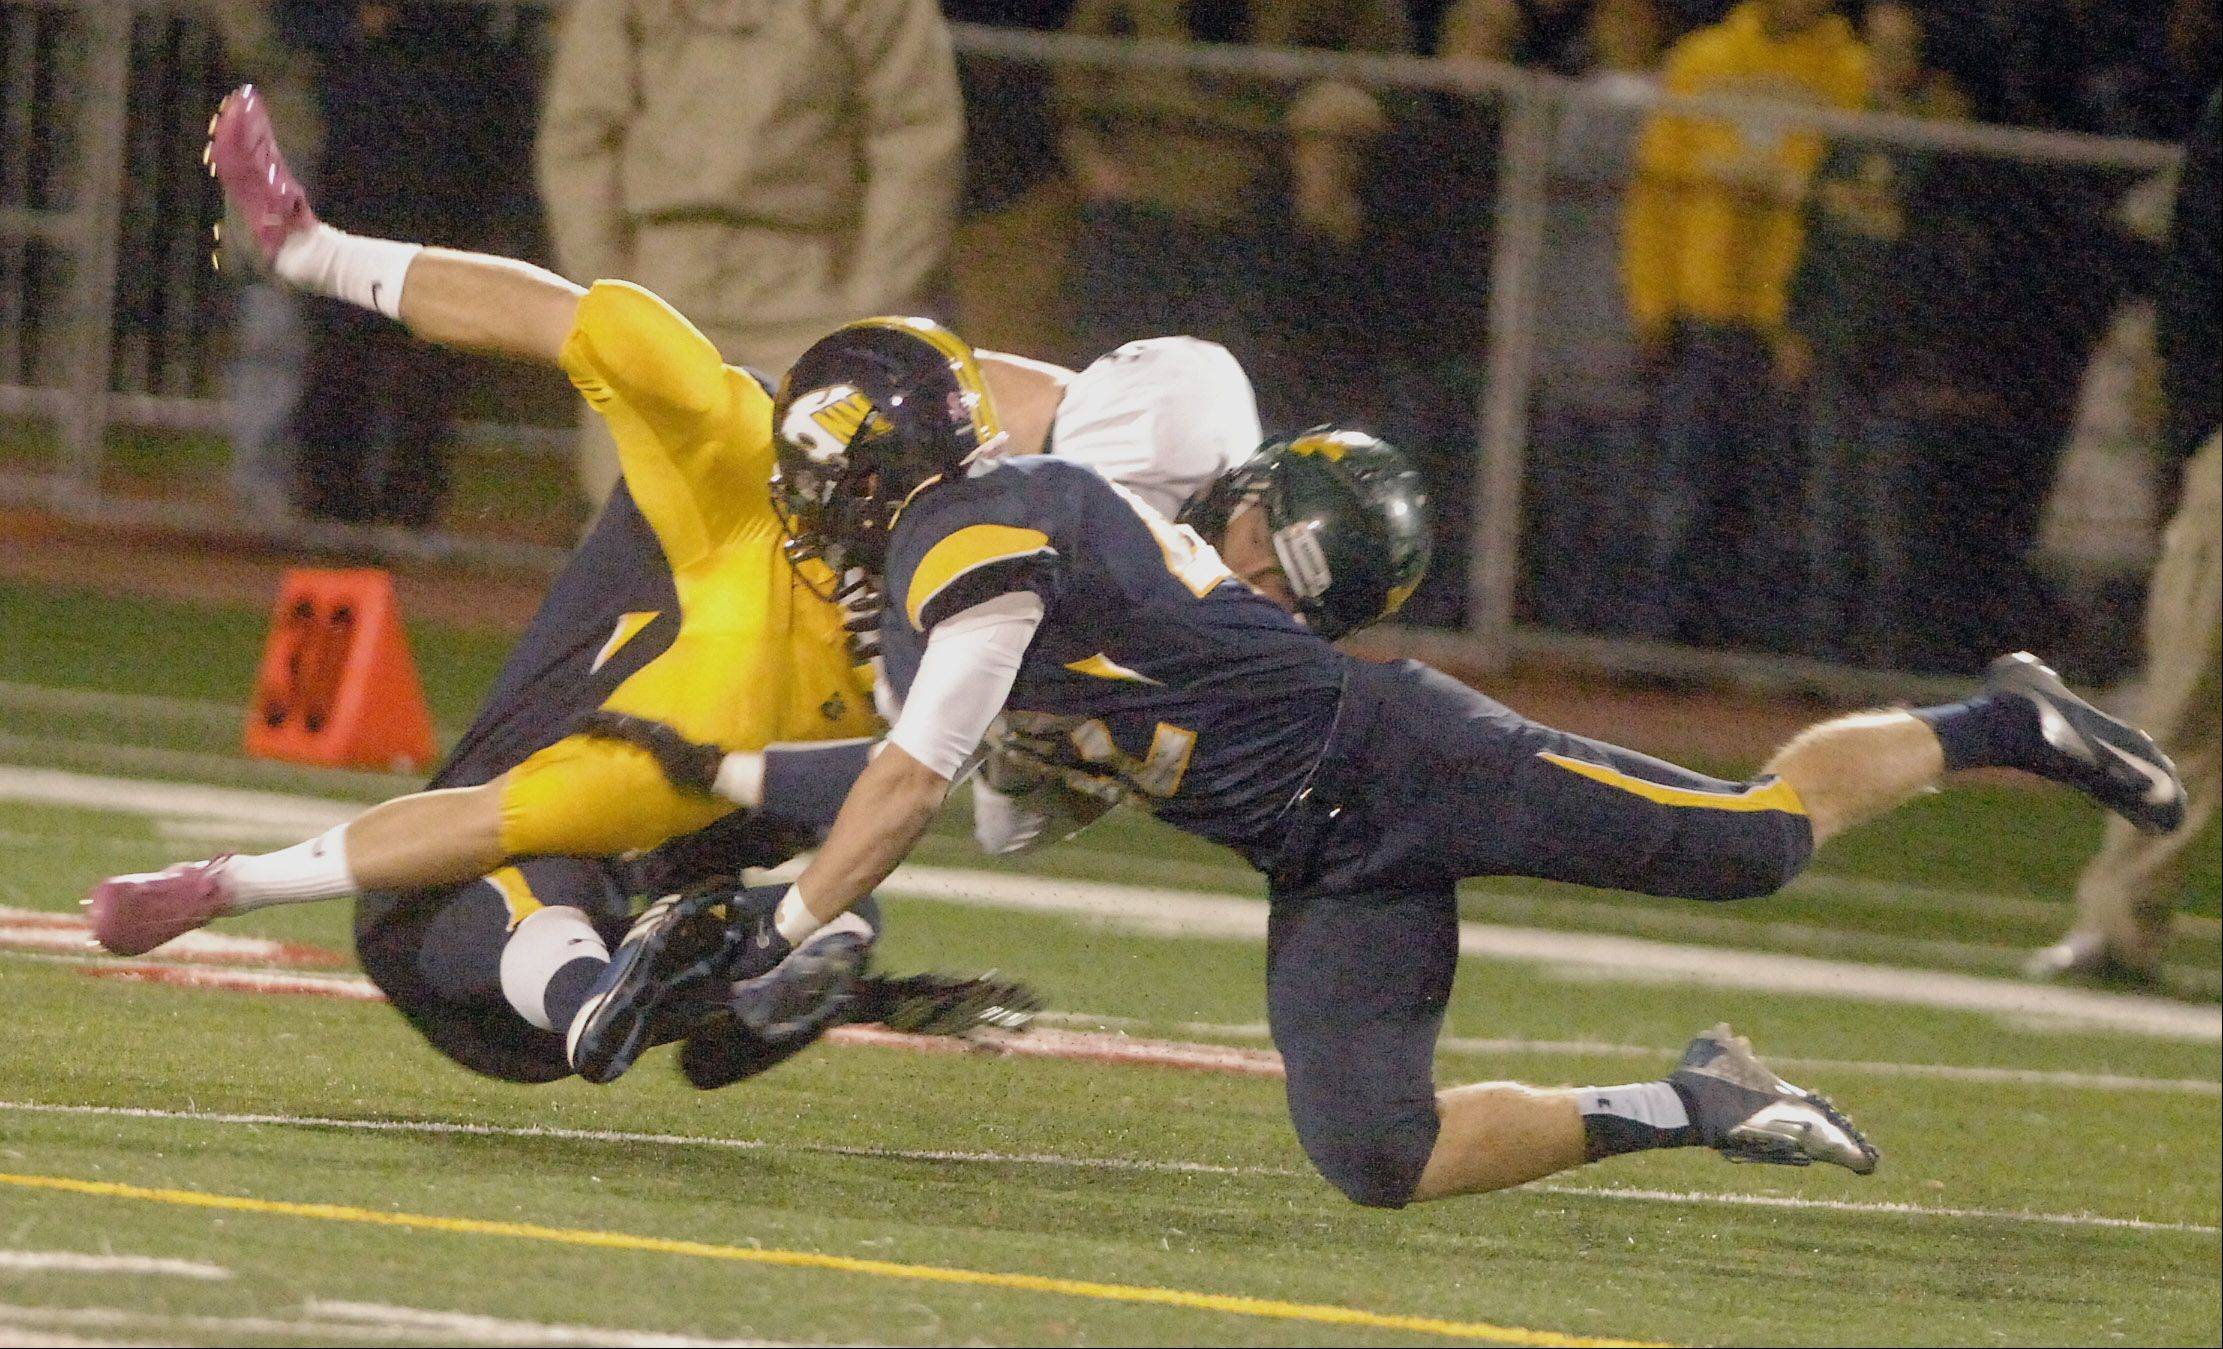 Dan Waldron of Waubonsie Valley High School is pulled down by Spencer Donahue of NeuquaValley High School.